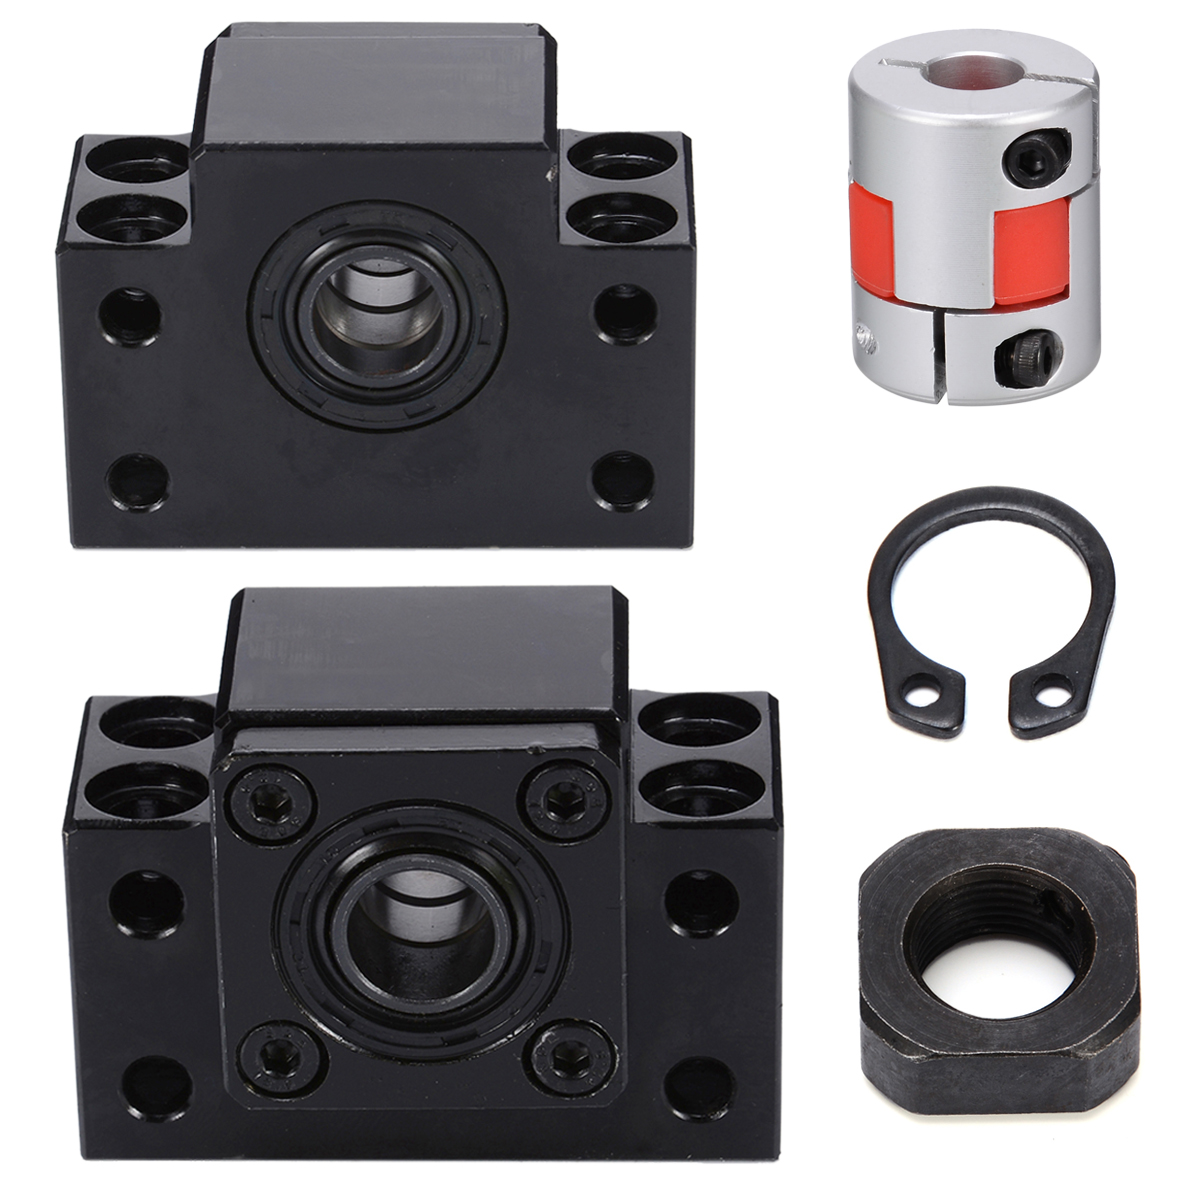 45 Steel SFU1605 BK12 BF12 Ball Screw Support + Lock Nuts Clasped with Coupler For CNCN Parts